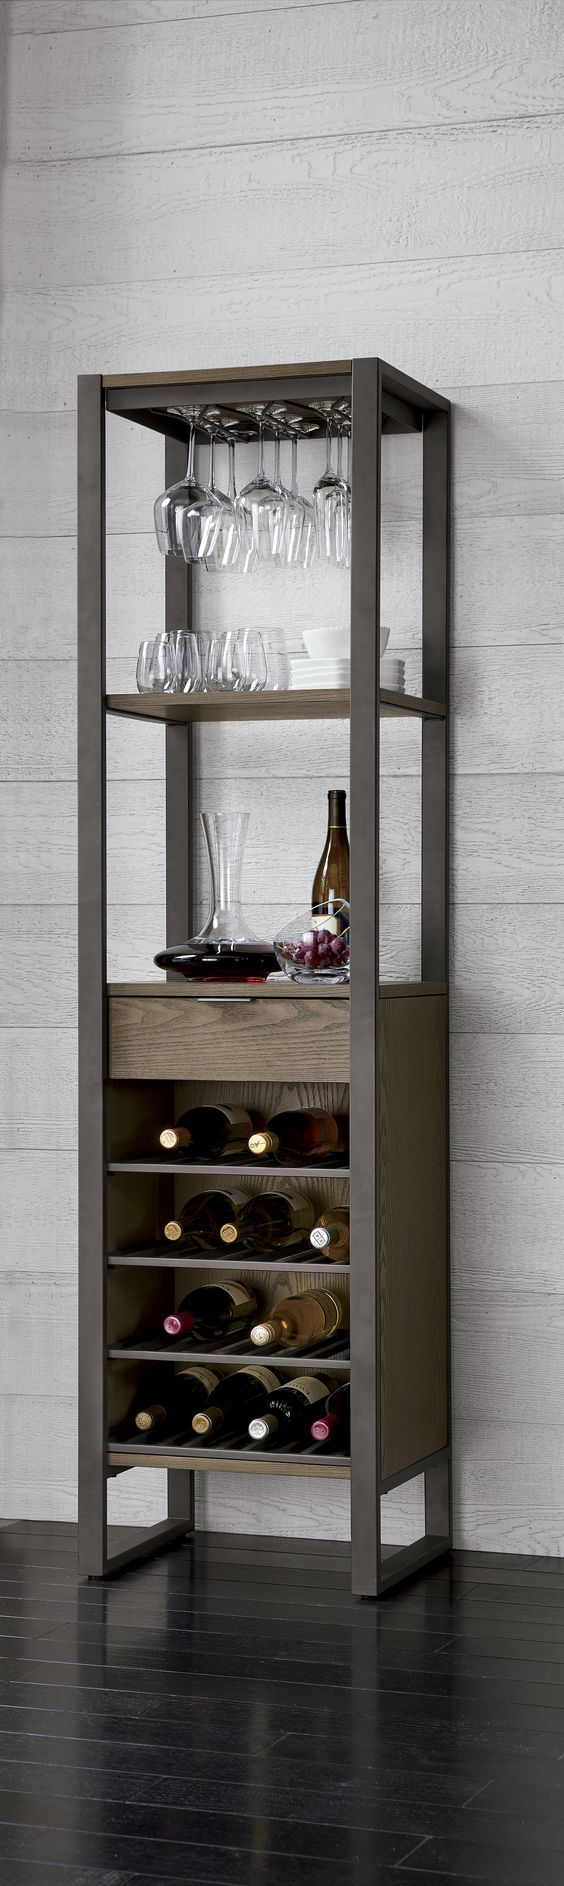 This all-in-one wine tower promises to be the center of the party. Crafted of ash veneer with a warm charcoal finish, this tall storage piece provides airy and open shelves to rack stemware and provide easy access to barware and bottles. A drawer at midpoint keeps recipes and bar tools tucked away, while down below, a wine grid stows up to 16 bottles.: